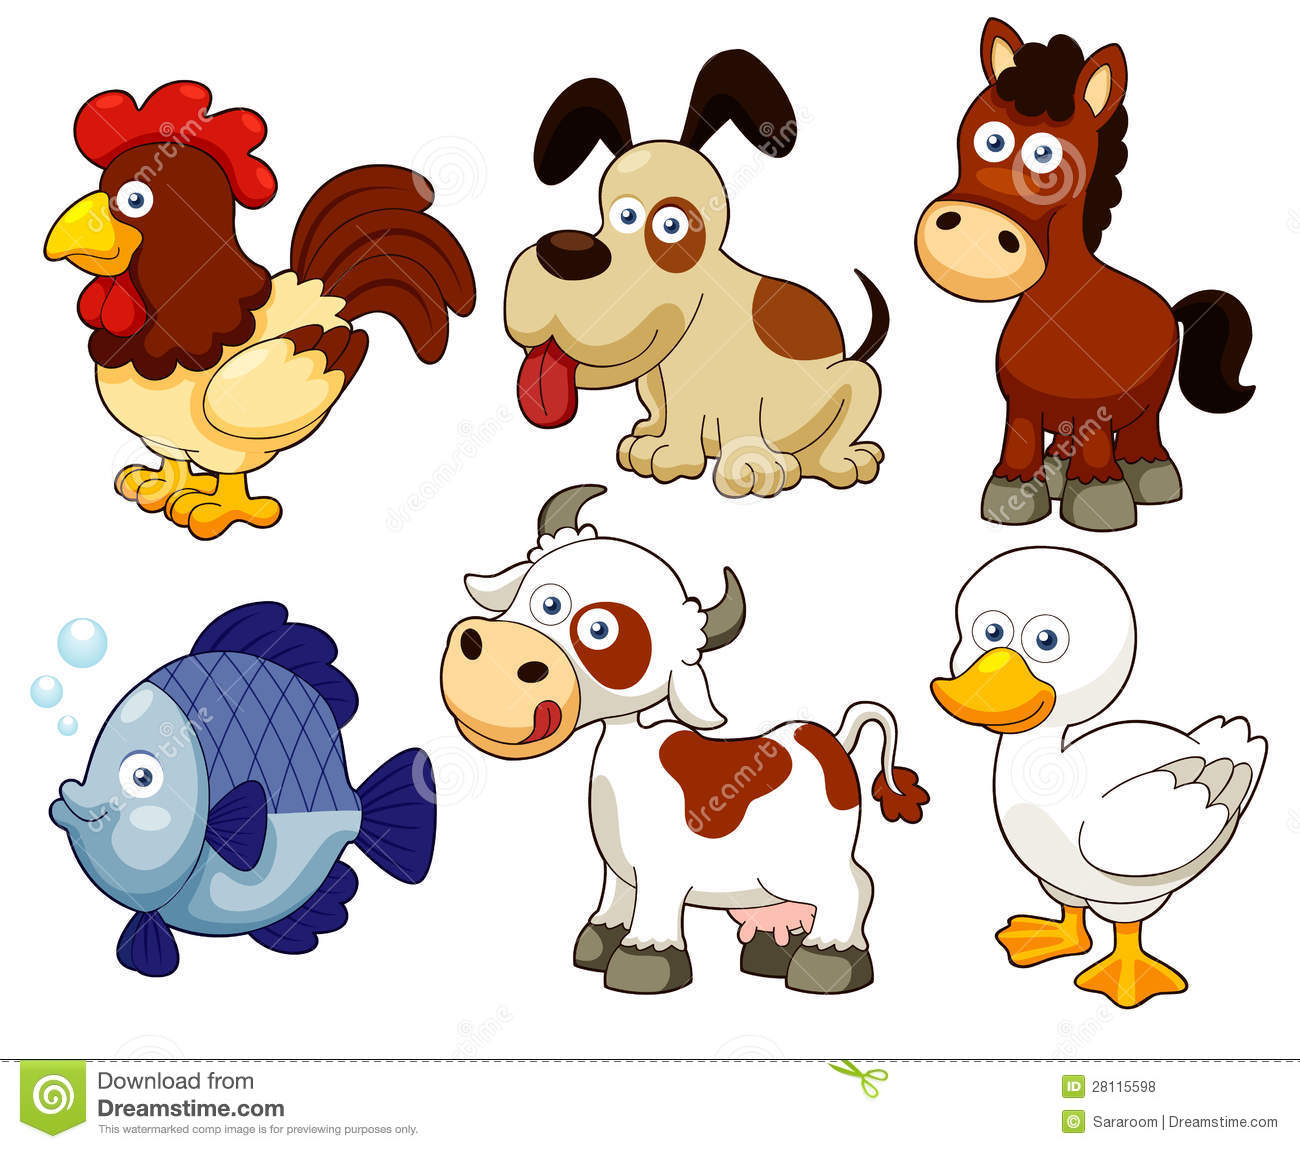 Animal clipart clipart. Images clipartfest baby jungle